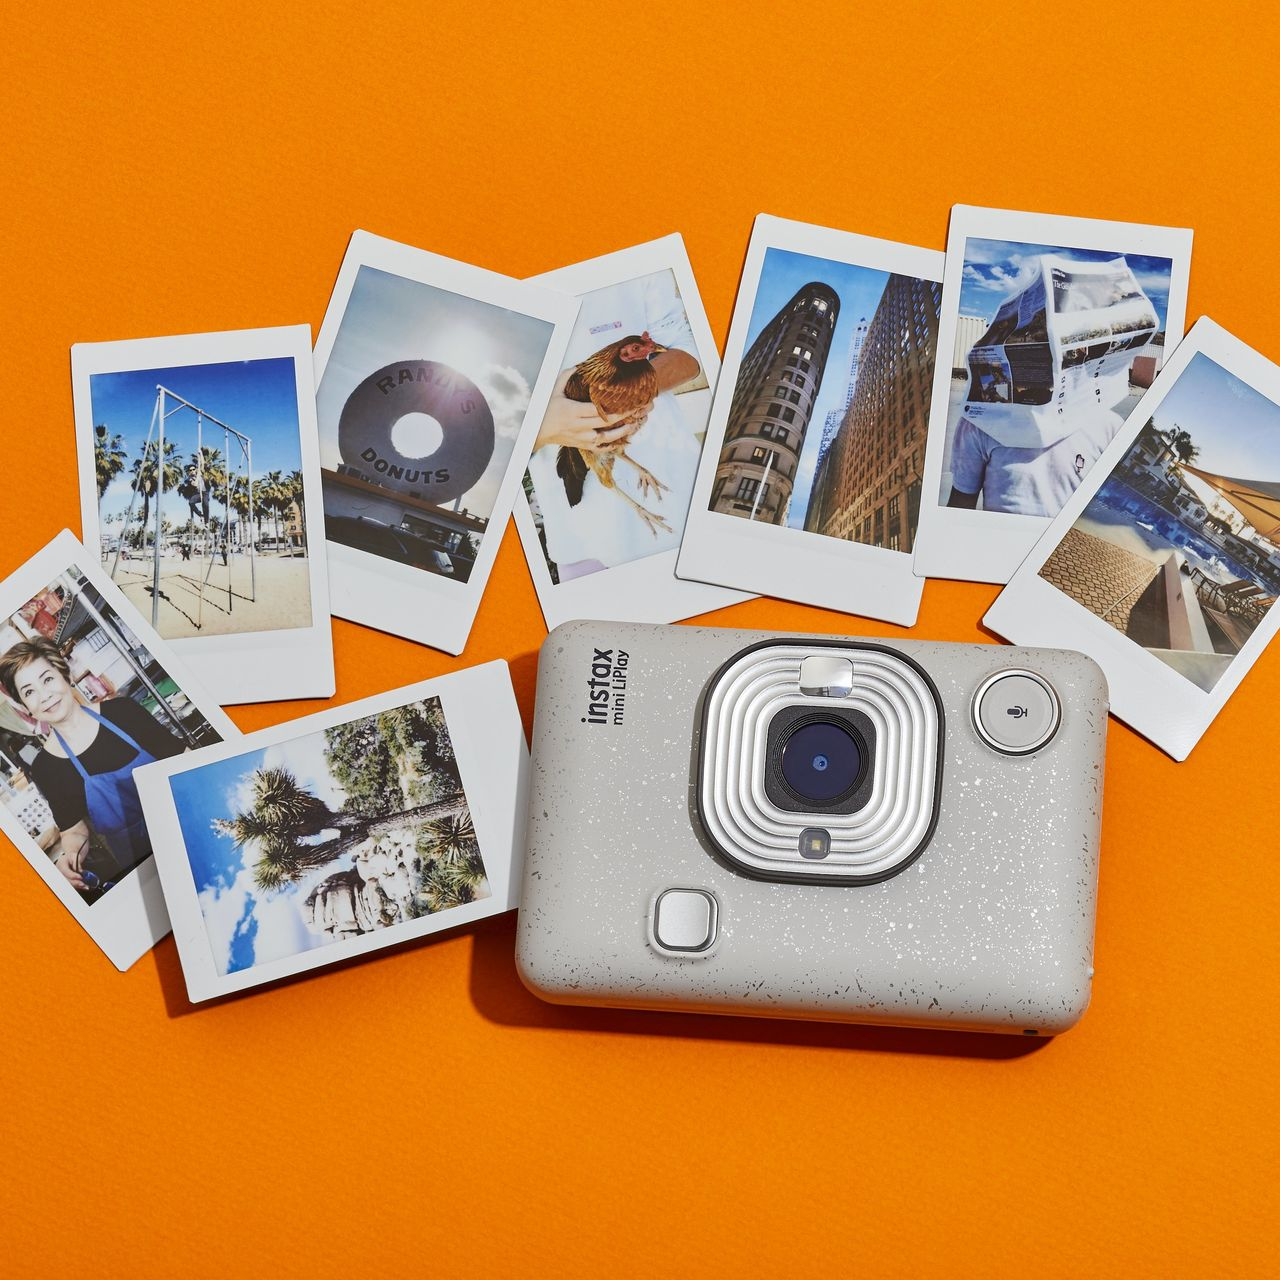 An Instant Camera Can Save You Time, Money and Stress